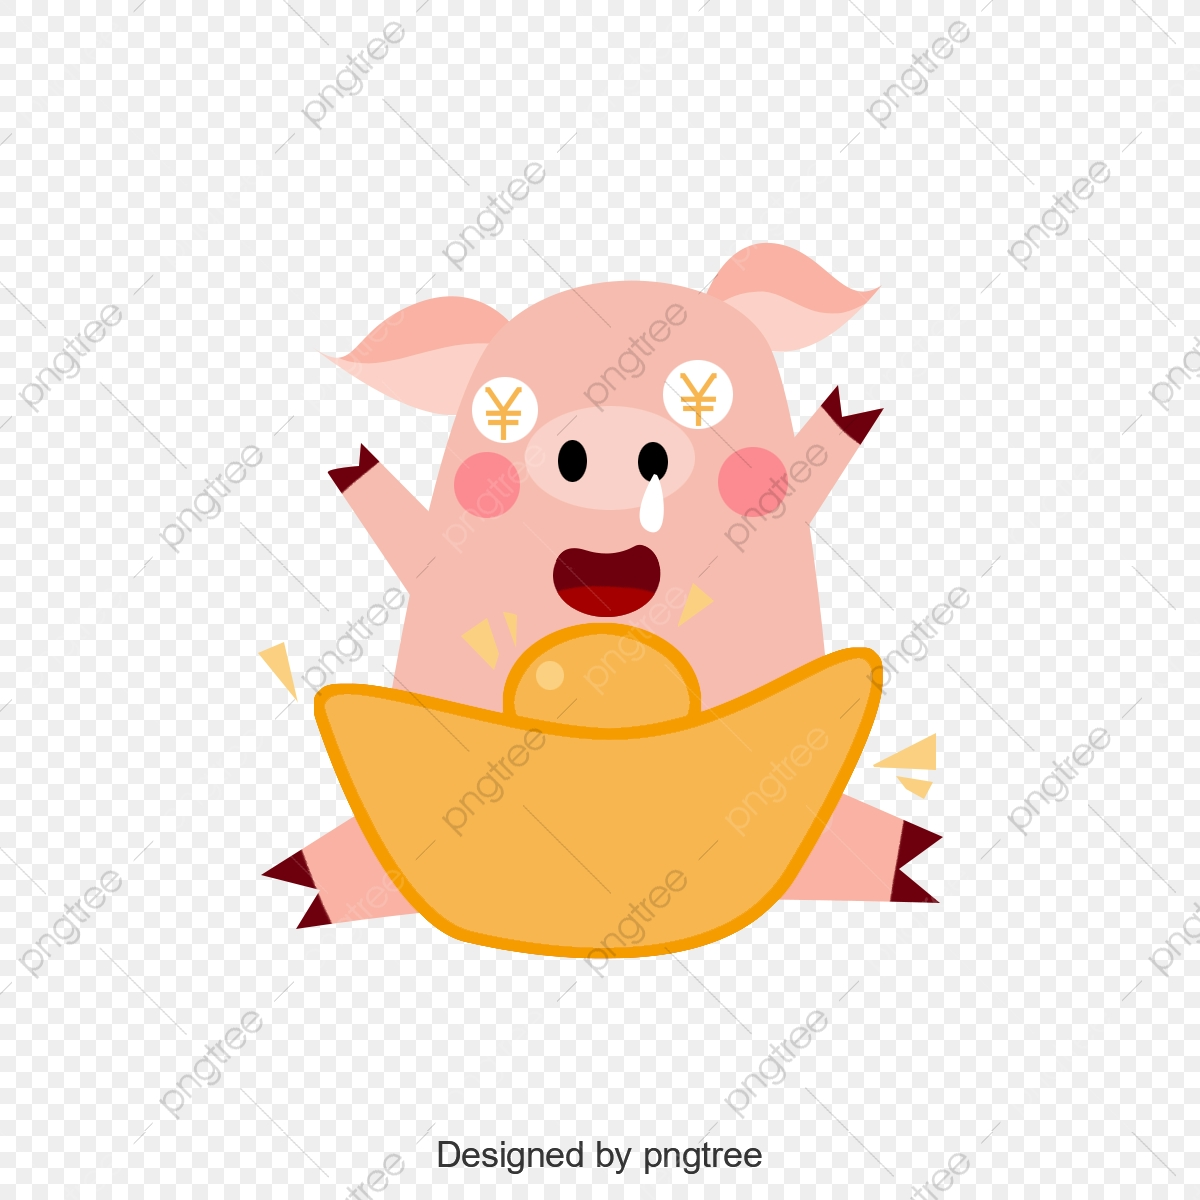 2019 New Year Wallpaper Elements Background, 2019, Pig